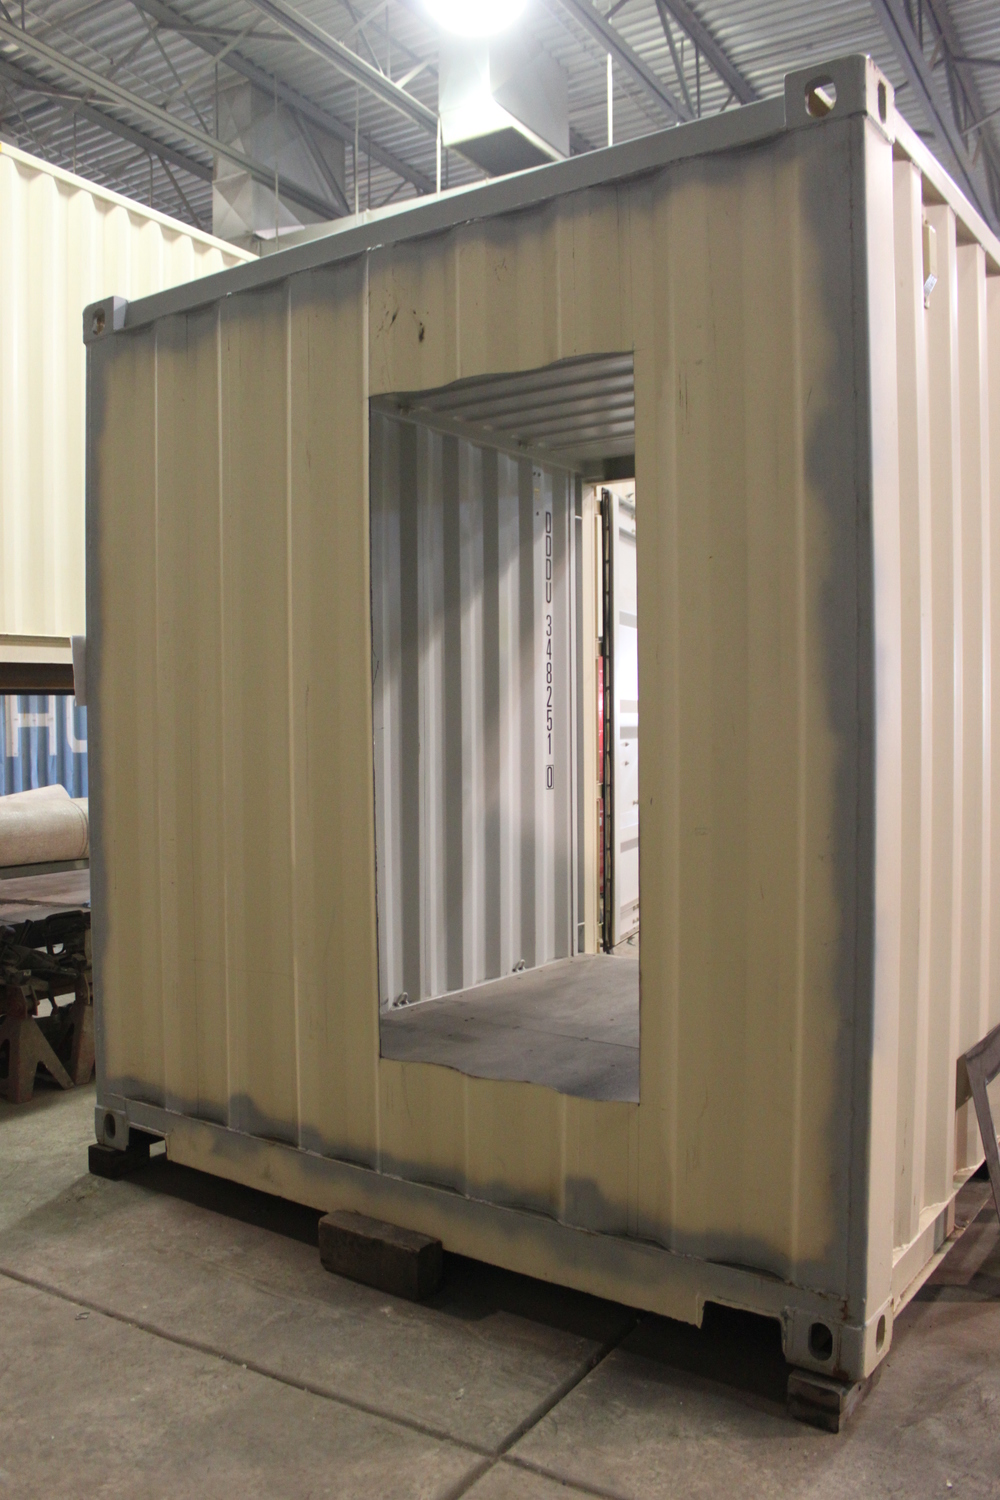 The saner container shipping containers at a fair price super cubes llc 1 877 374 5452 - Shipping container end welding ...